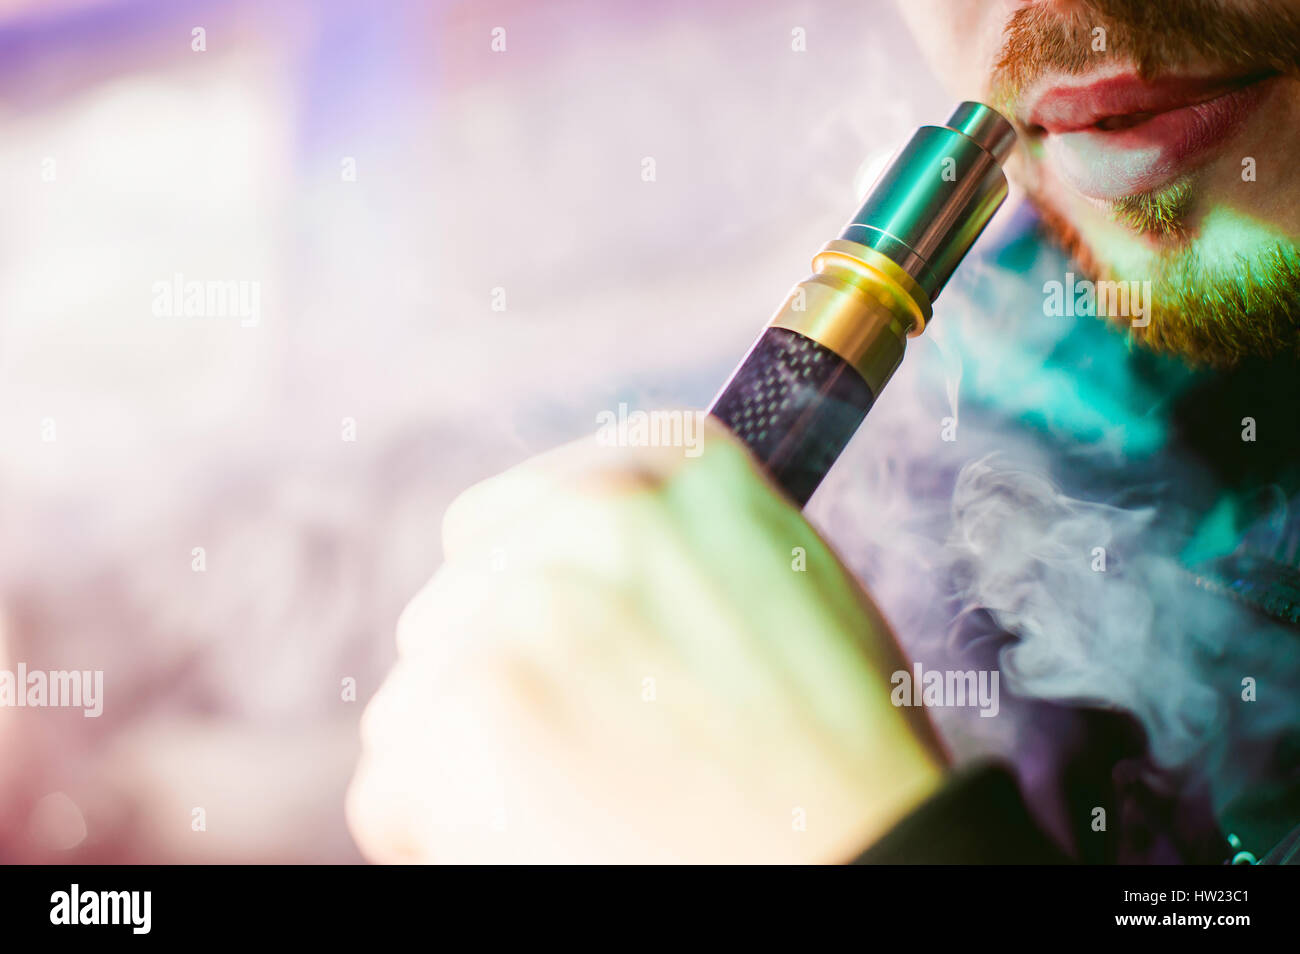 young vaper man with beard vaping mechanical mod. Guy smokes an electronic cigarette by blowing a smoke vapor. Bringing - Stock Image